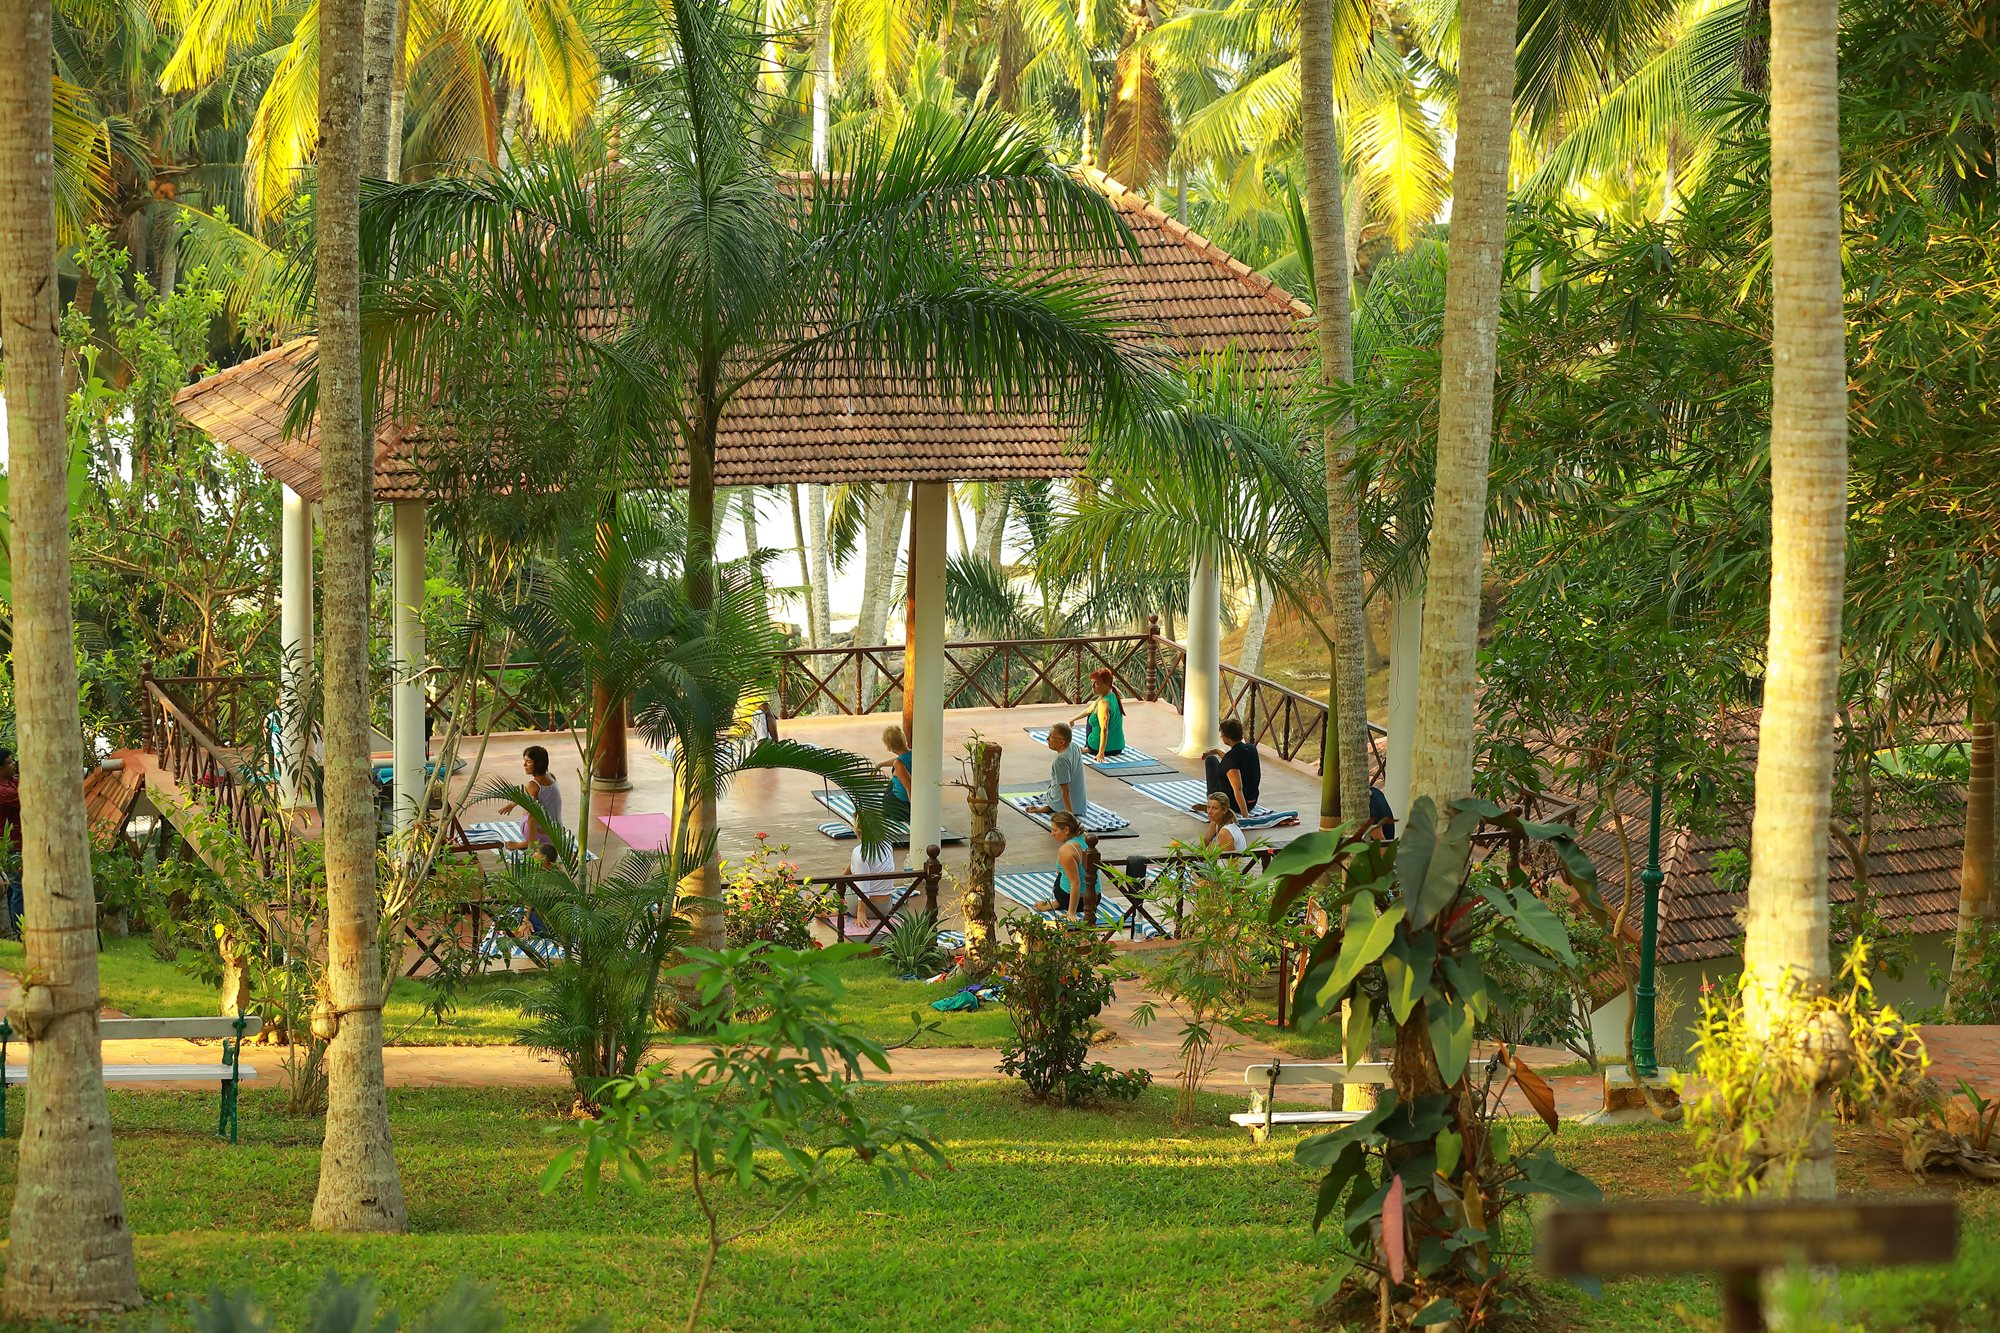 NIKKIS NEST SPADREAMS YOGA IN INDIA